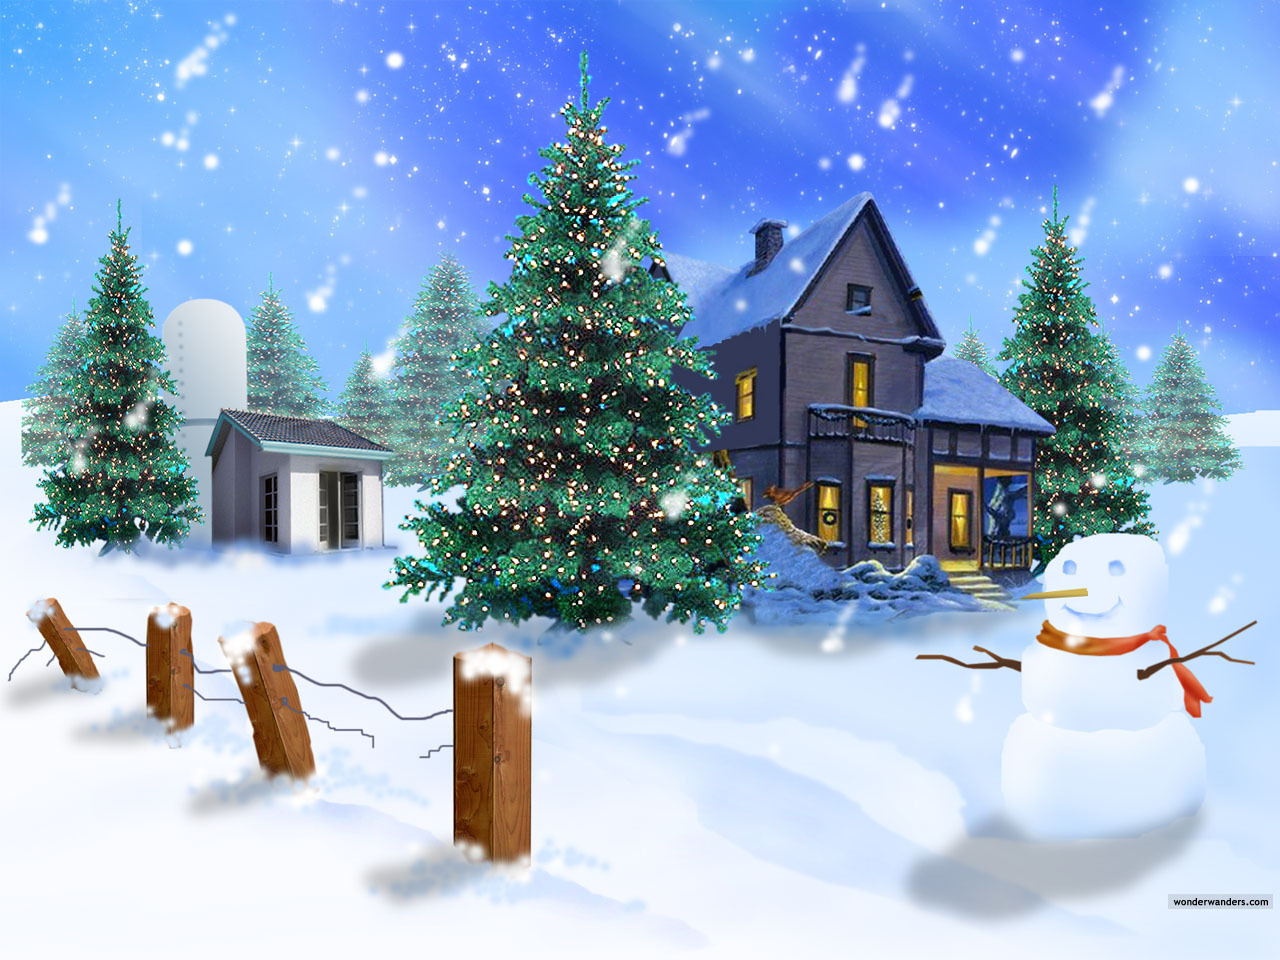 Christmas Scenes Wallpaper photos